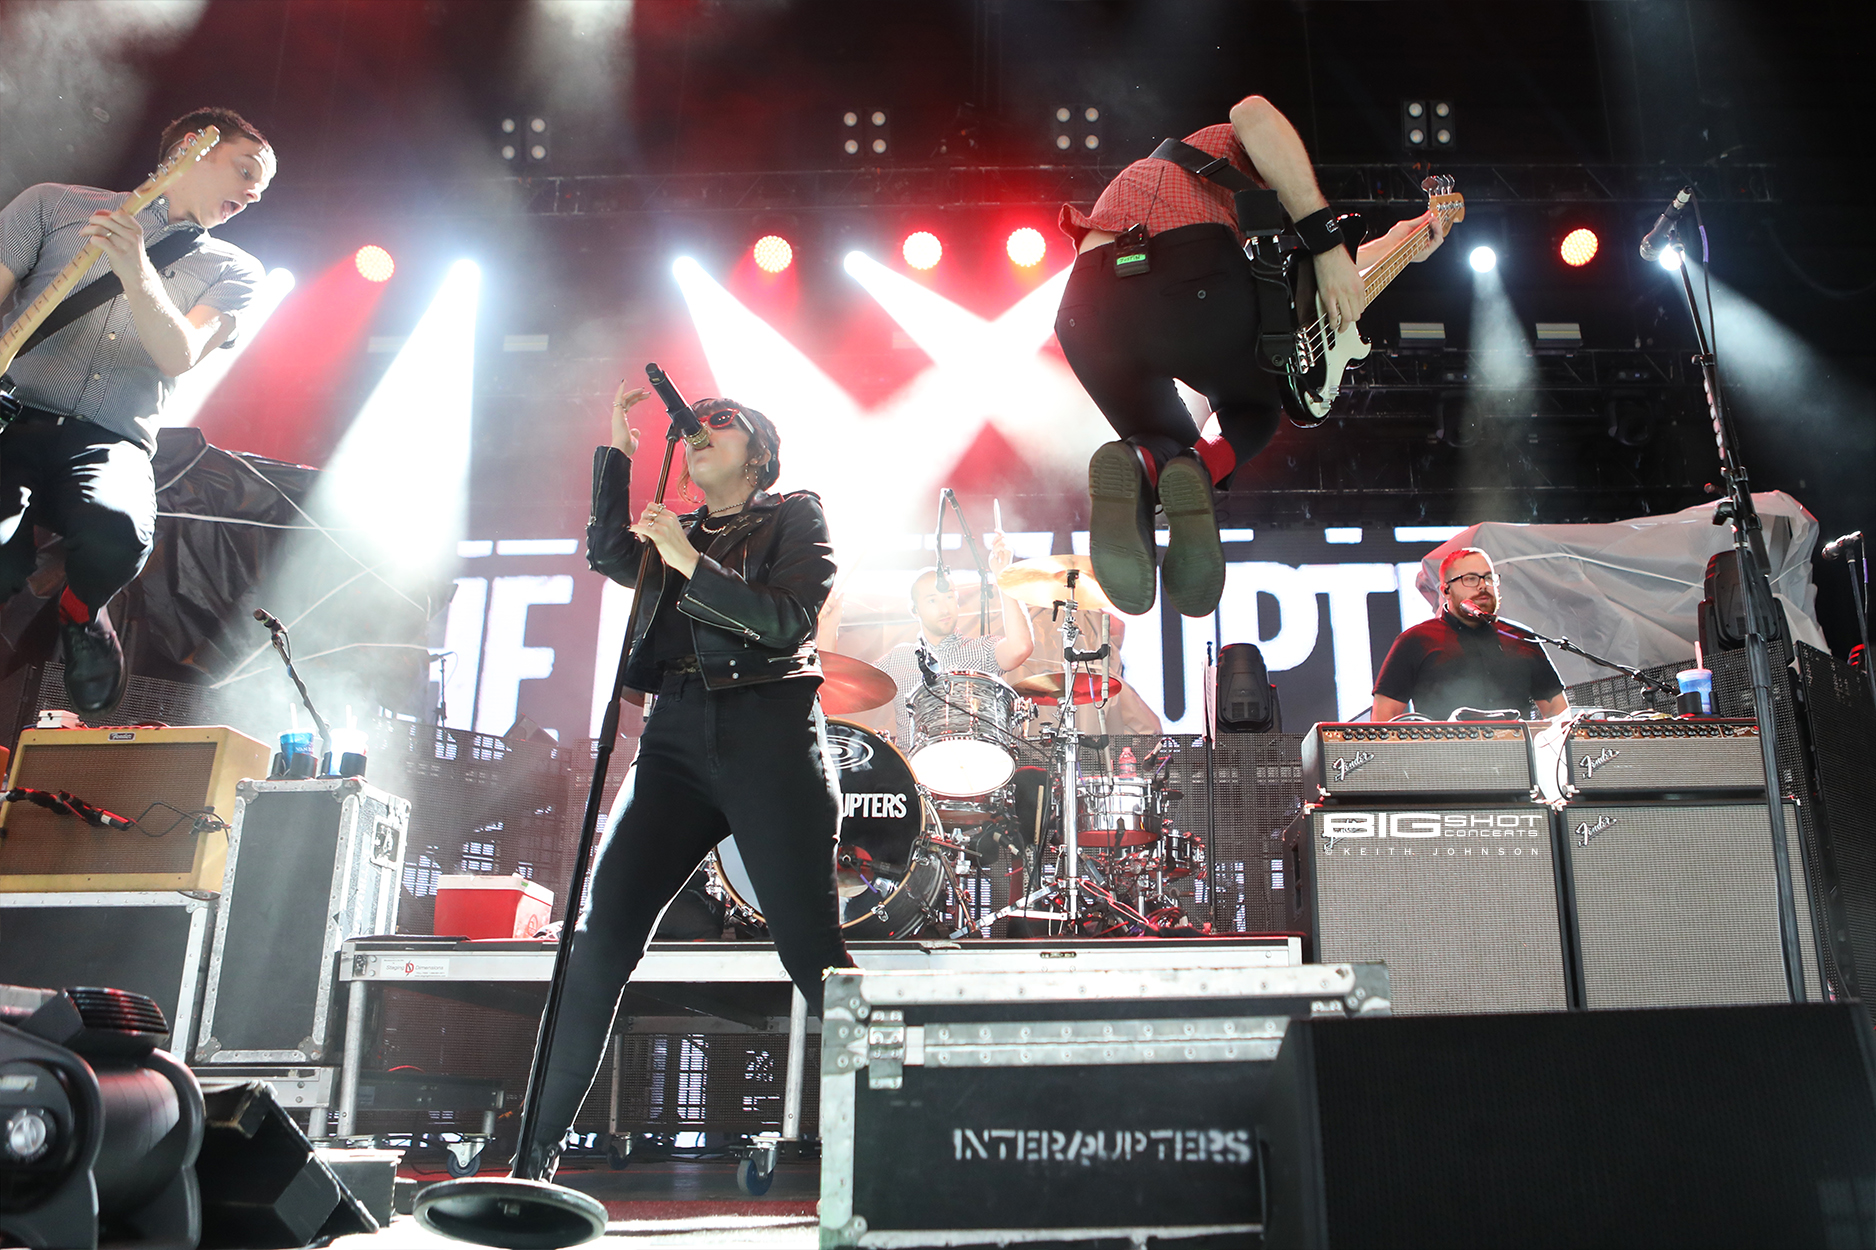 The Interrupters - Tour 2019